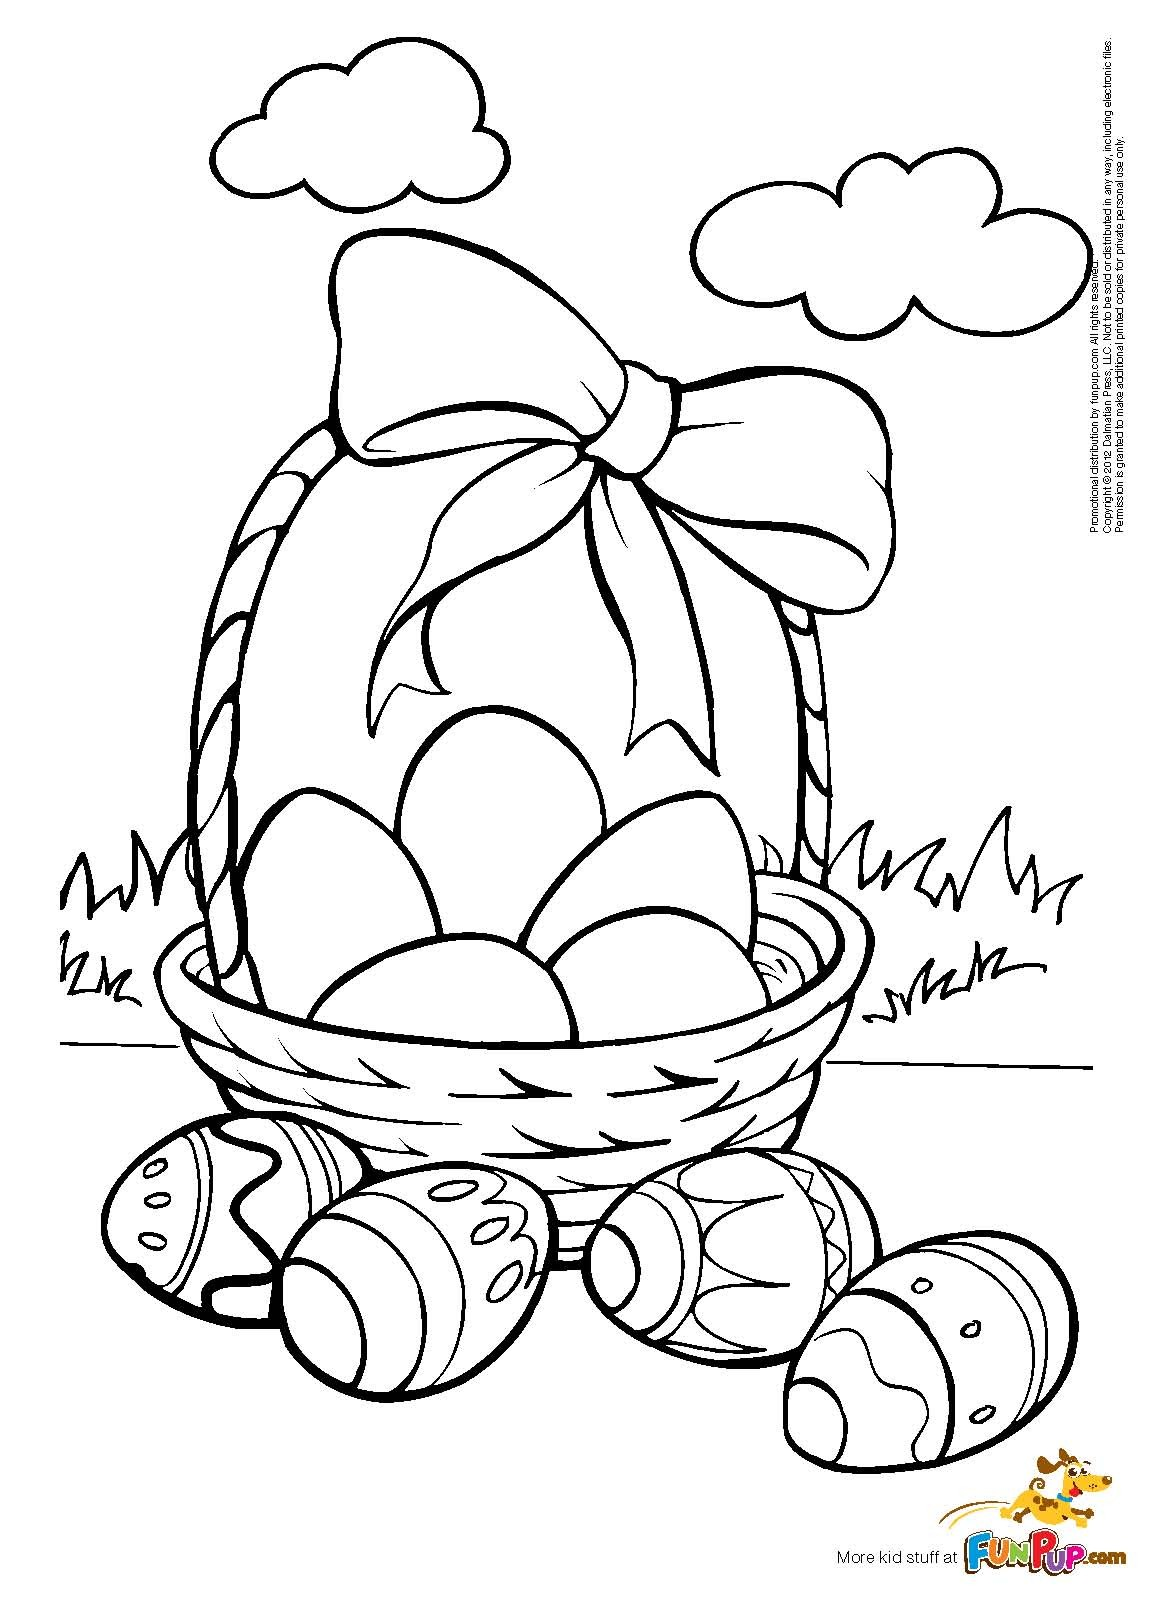 march wind coloring pages - photo#38